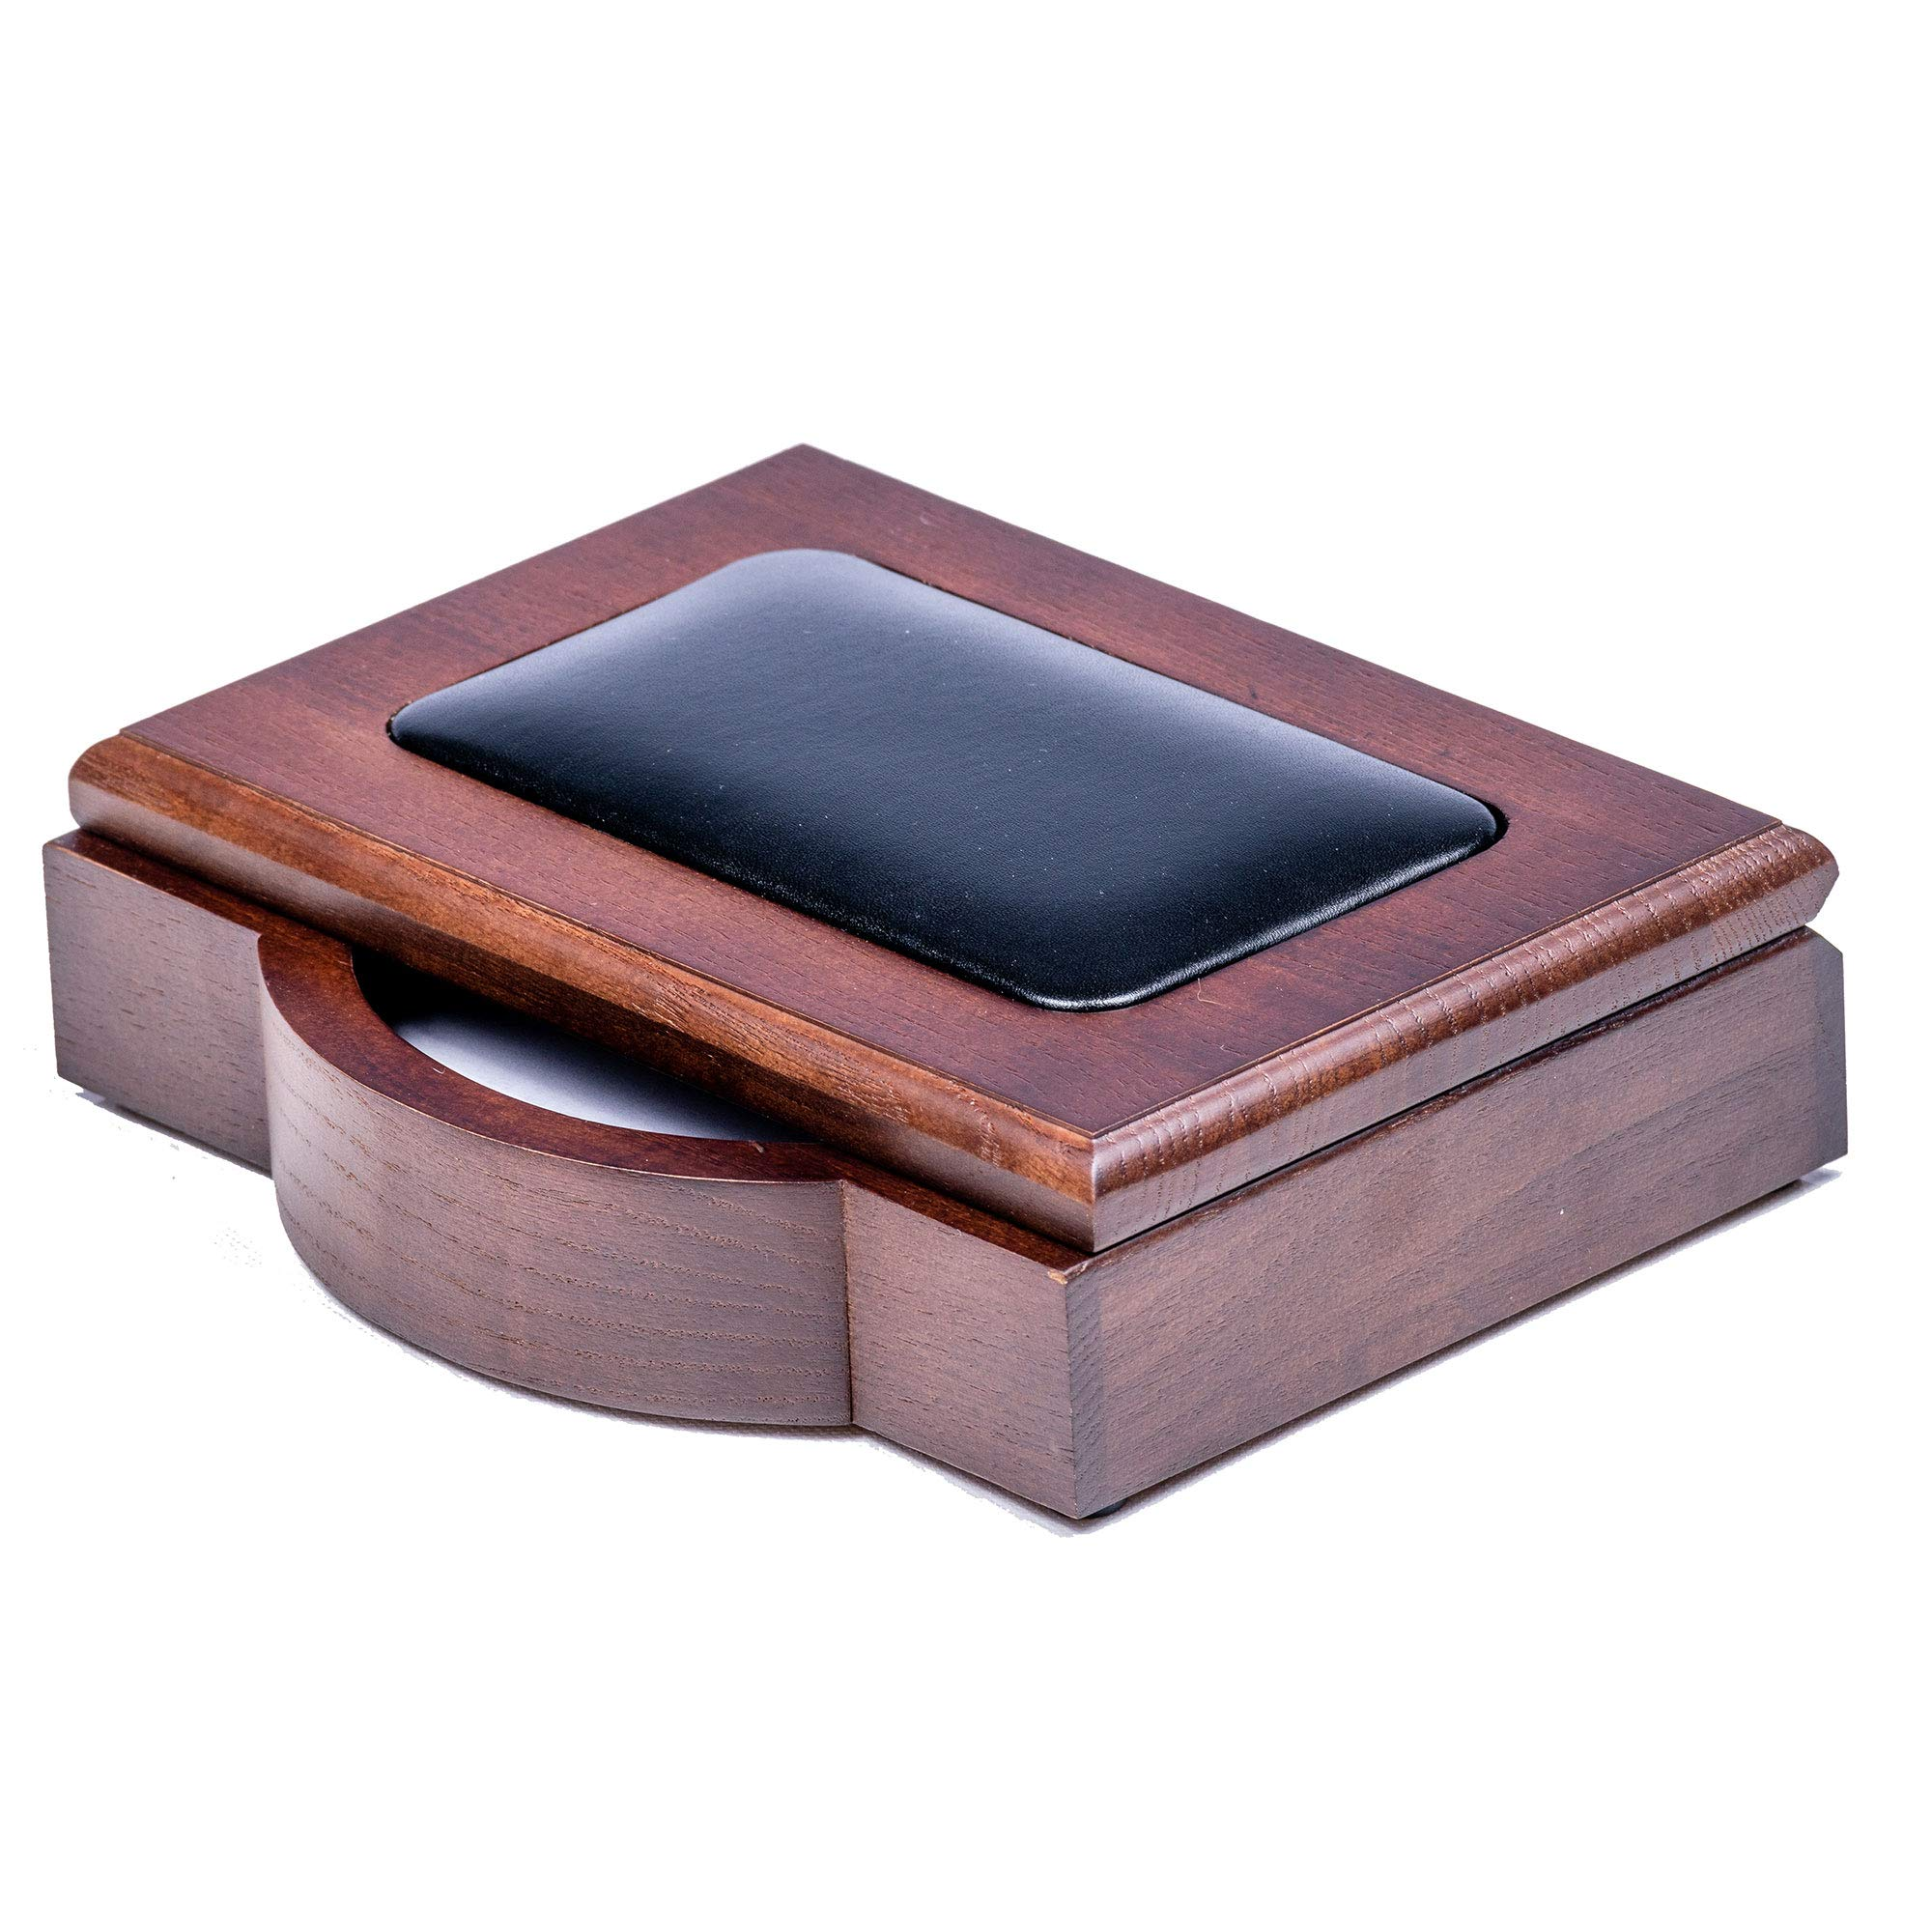 Dacasso A8409 4 x 6 Desktop Memo Holder, Wood & Leather, Walnut by Dacasso